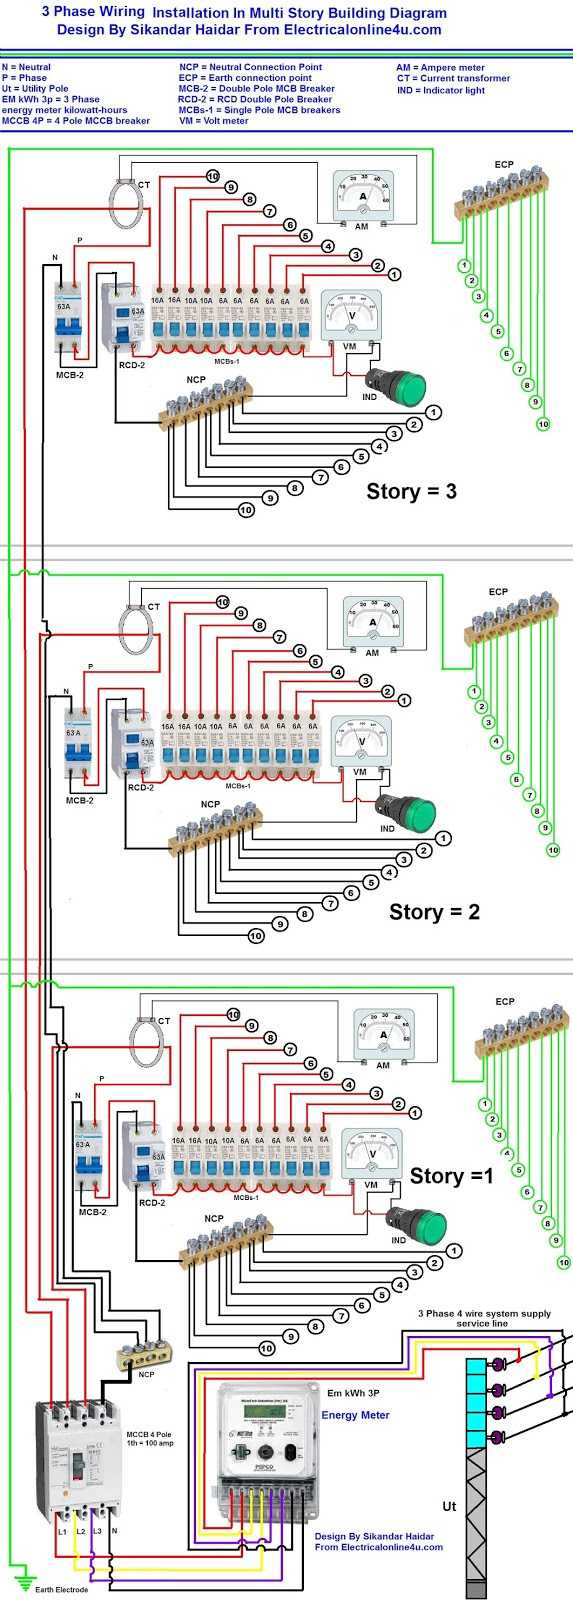 3 phase distribution board diagram for multi story house, Wiring diagram